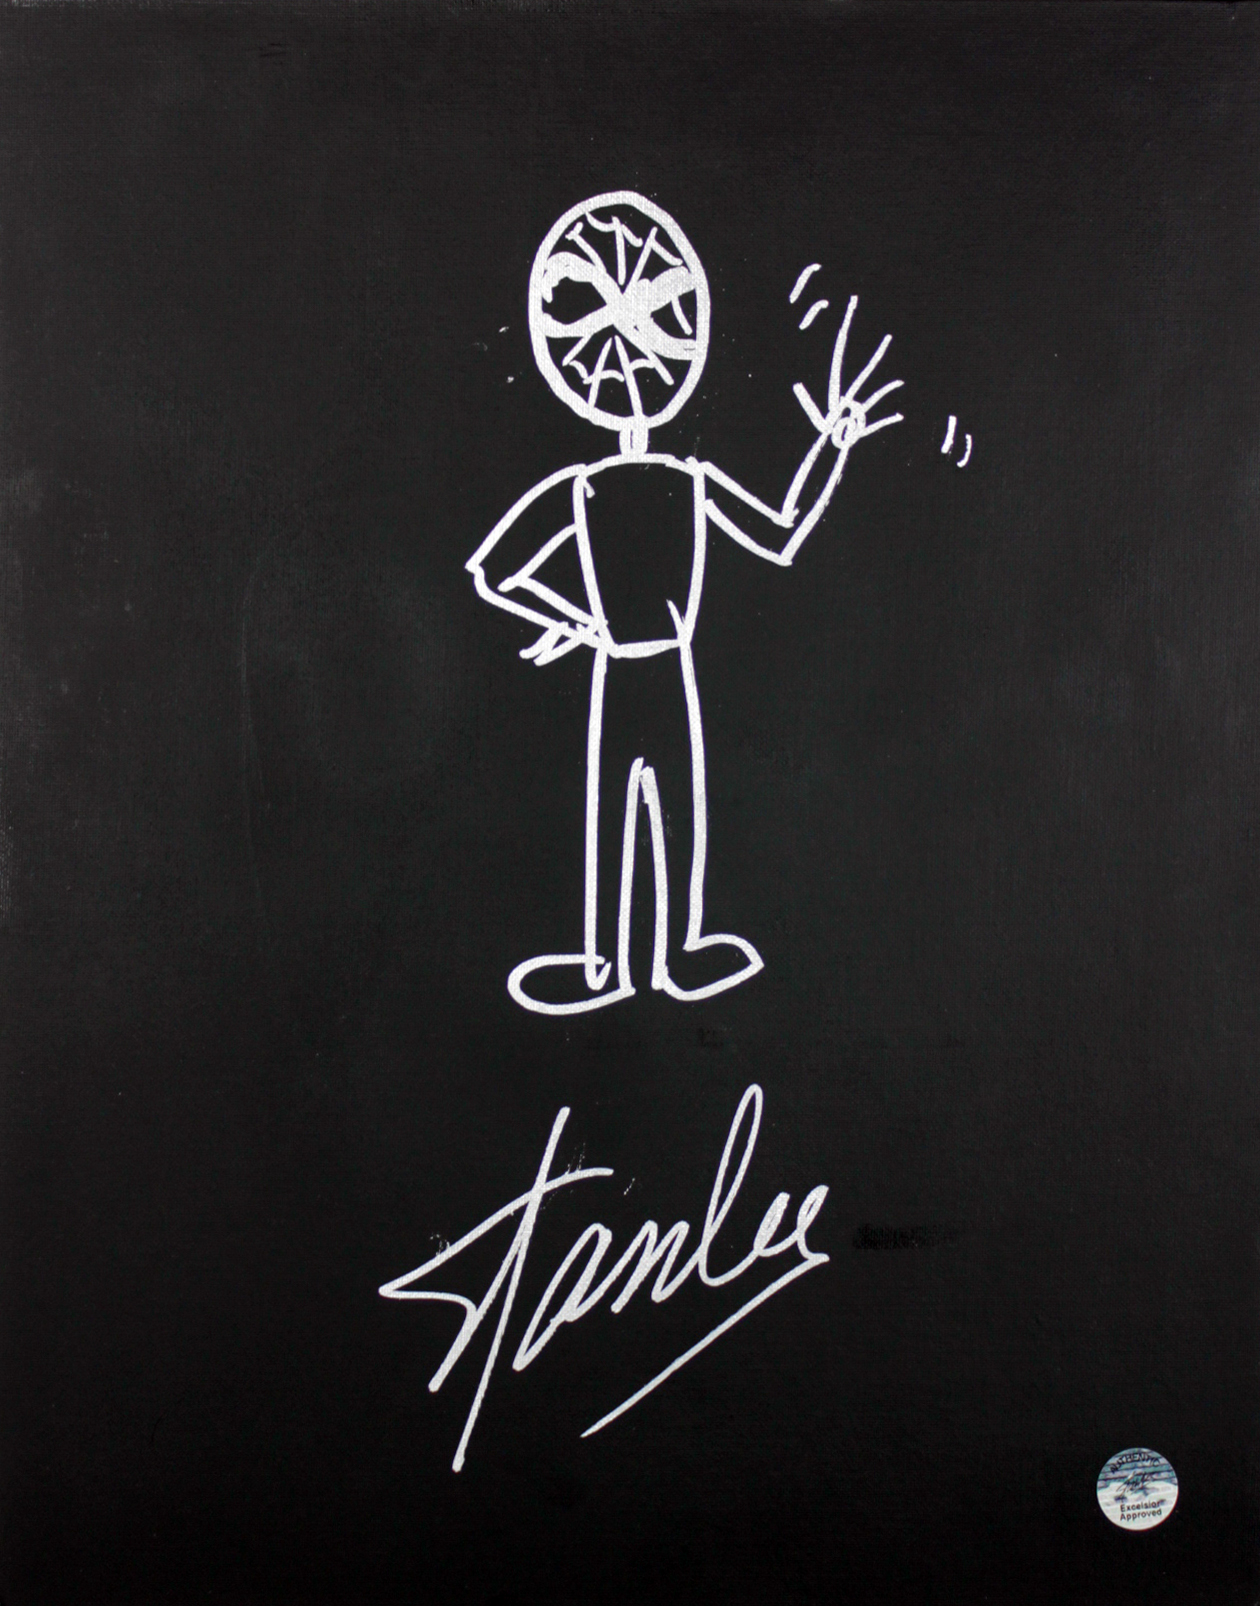 Stan Lee Authentic Signed 16x20 Canvas w/ Spider-man Sketch PSA/DNA #W00380